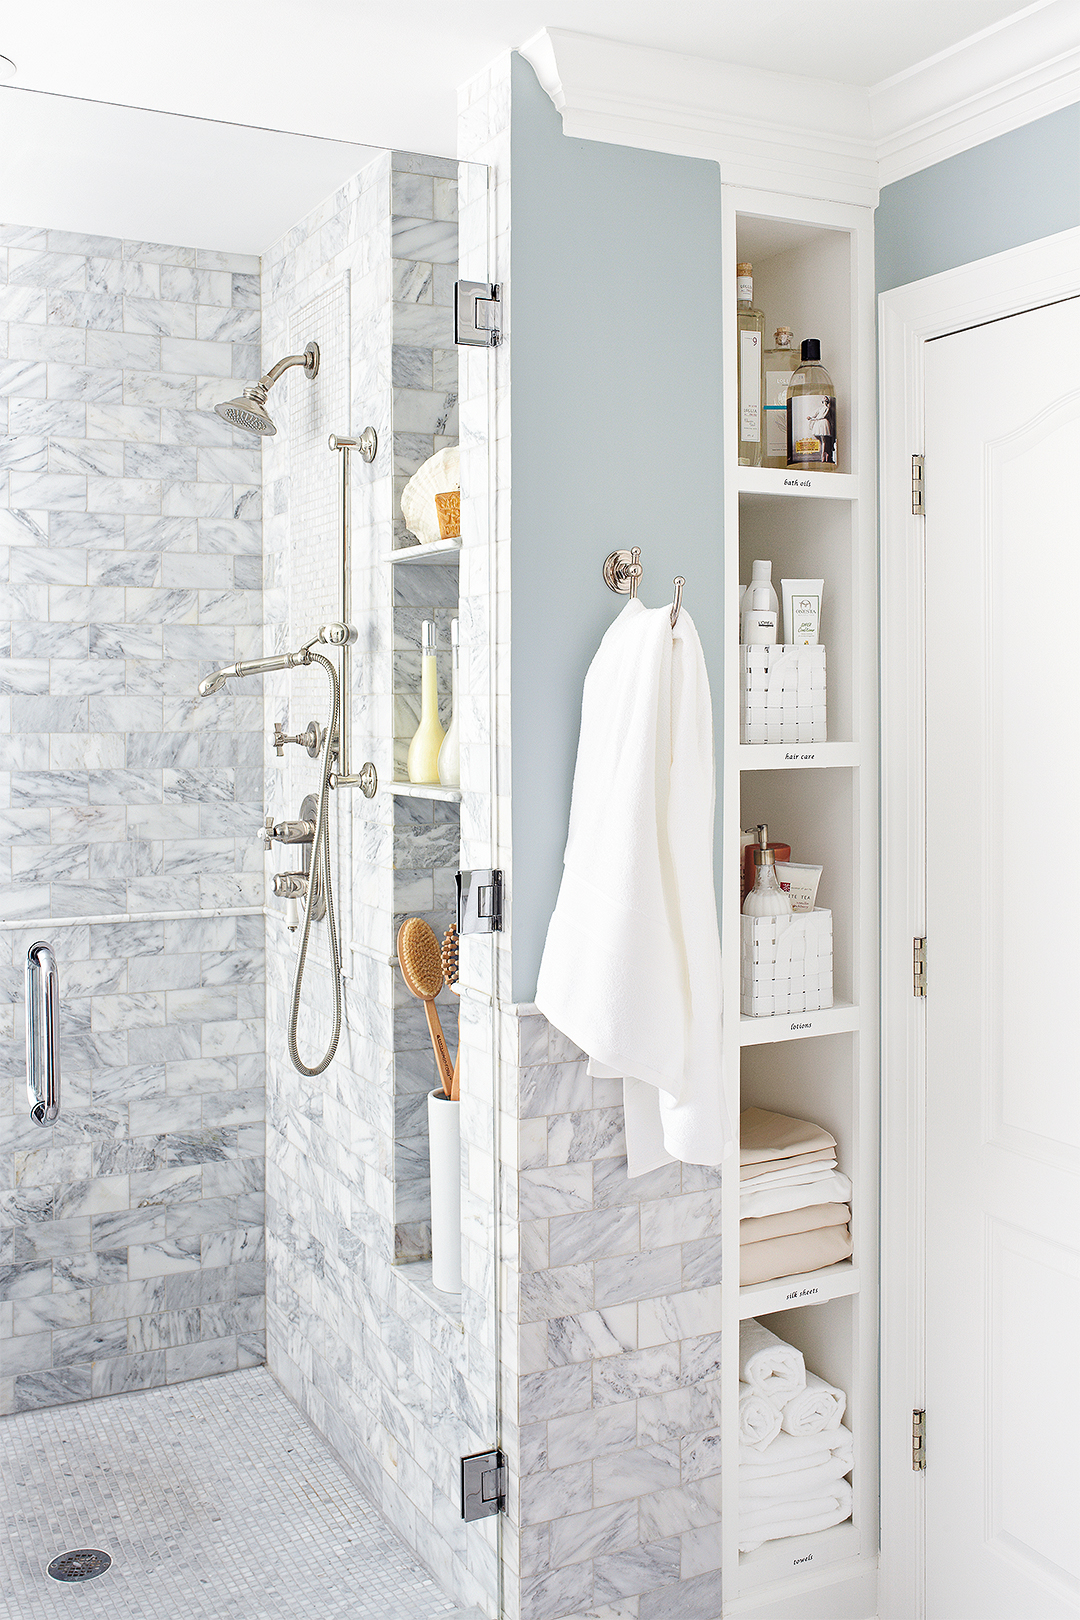 18 Absolutely Stunning Walk-In Showers for Small Baths on 15x10 bathroom ideas, 12x12 bathroom ideas, 8x11 bathroom ideas, 4x4 bathroom ideas, 9x4 bathroom ideas, 7x8 bathroom ideas, 9x8 bathroom ideas, 8x4 bathroom ideas, 3x6 bathroom ideas, 11x8 bathroom ideas, 4x6 bathroom ideas, 15x15 bathroom ideas, 9x5 bathroom ideas, sm bathroom ideas, 8x7 bathroom ideas, bathroom dimensions and layout ideas, 4x10 bathroom ideas, 6x5 bathroom ideas, 5x6 bathroom ideas, 7x12 bathroom ideas,